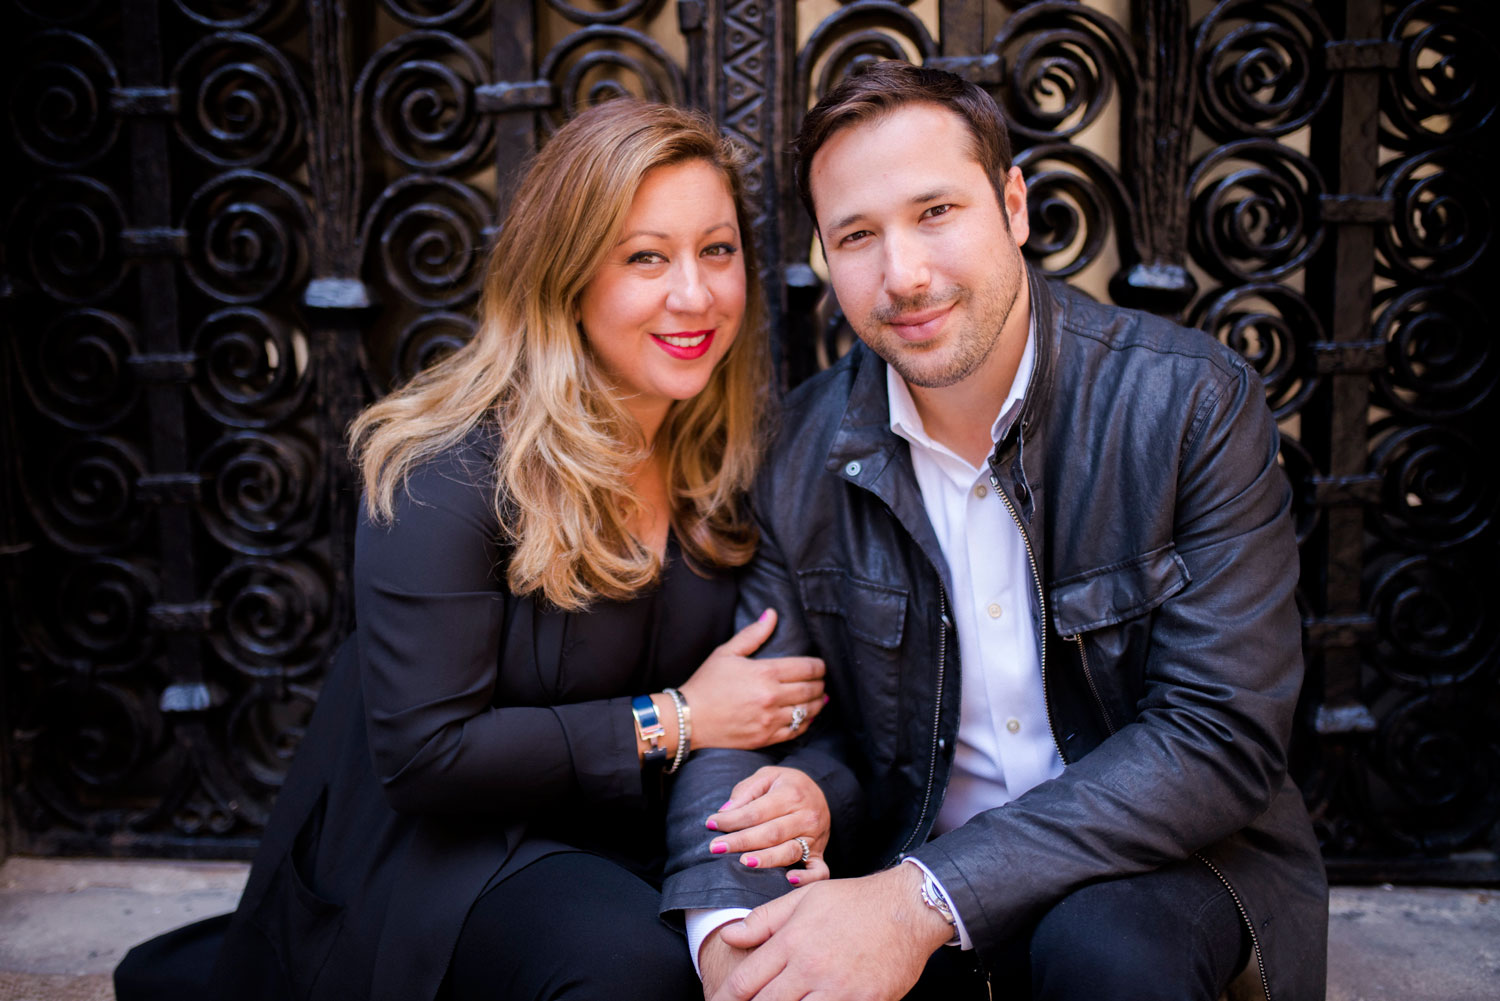 Michelle Durpetti and Collin Pierson engagement photos in Barcelona, Spain close up